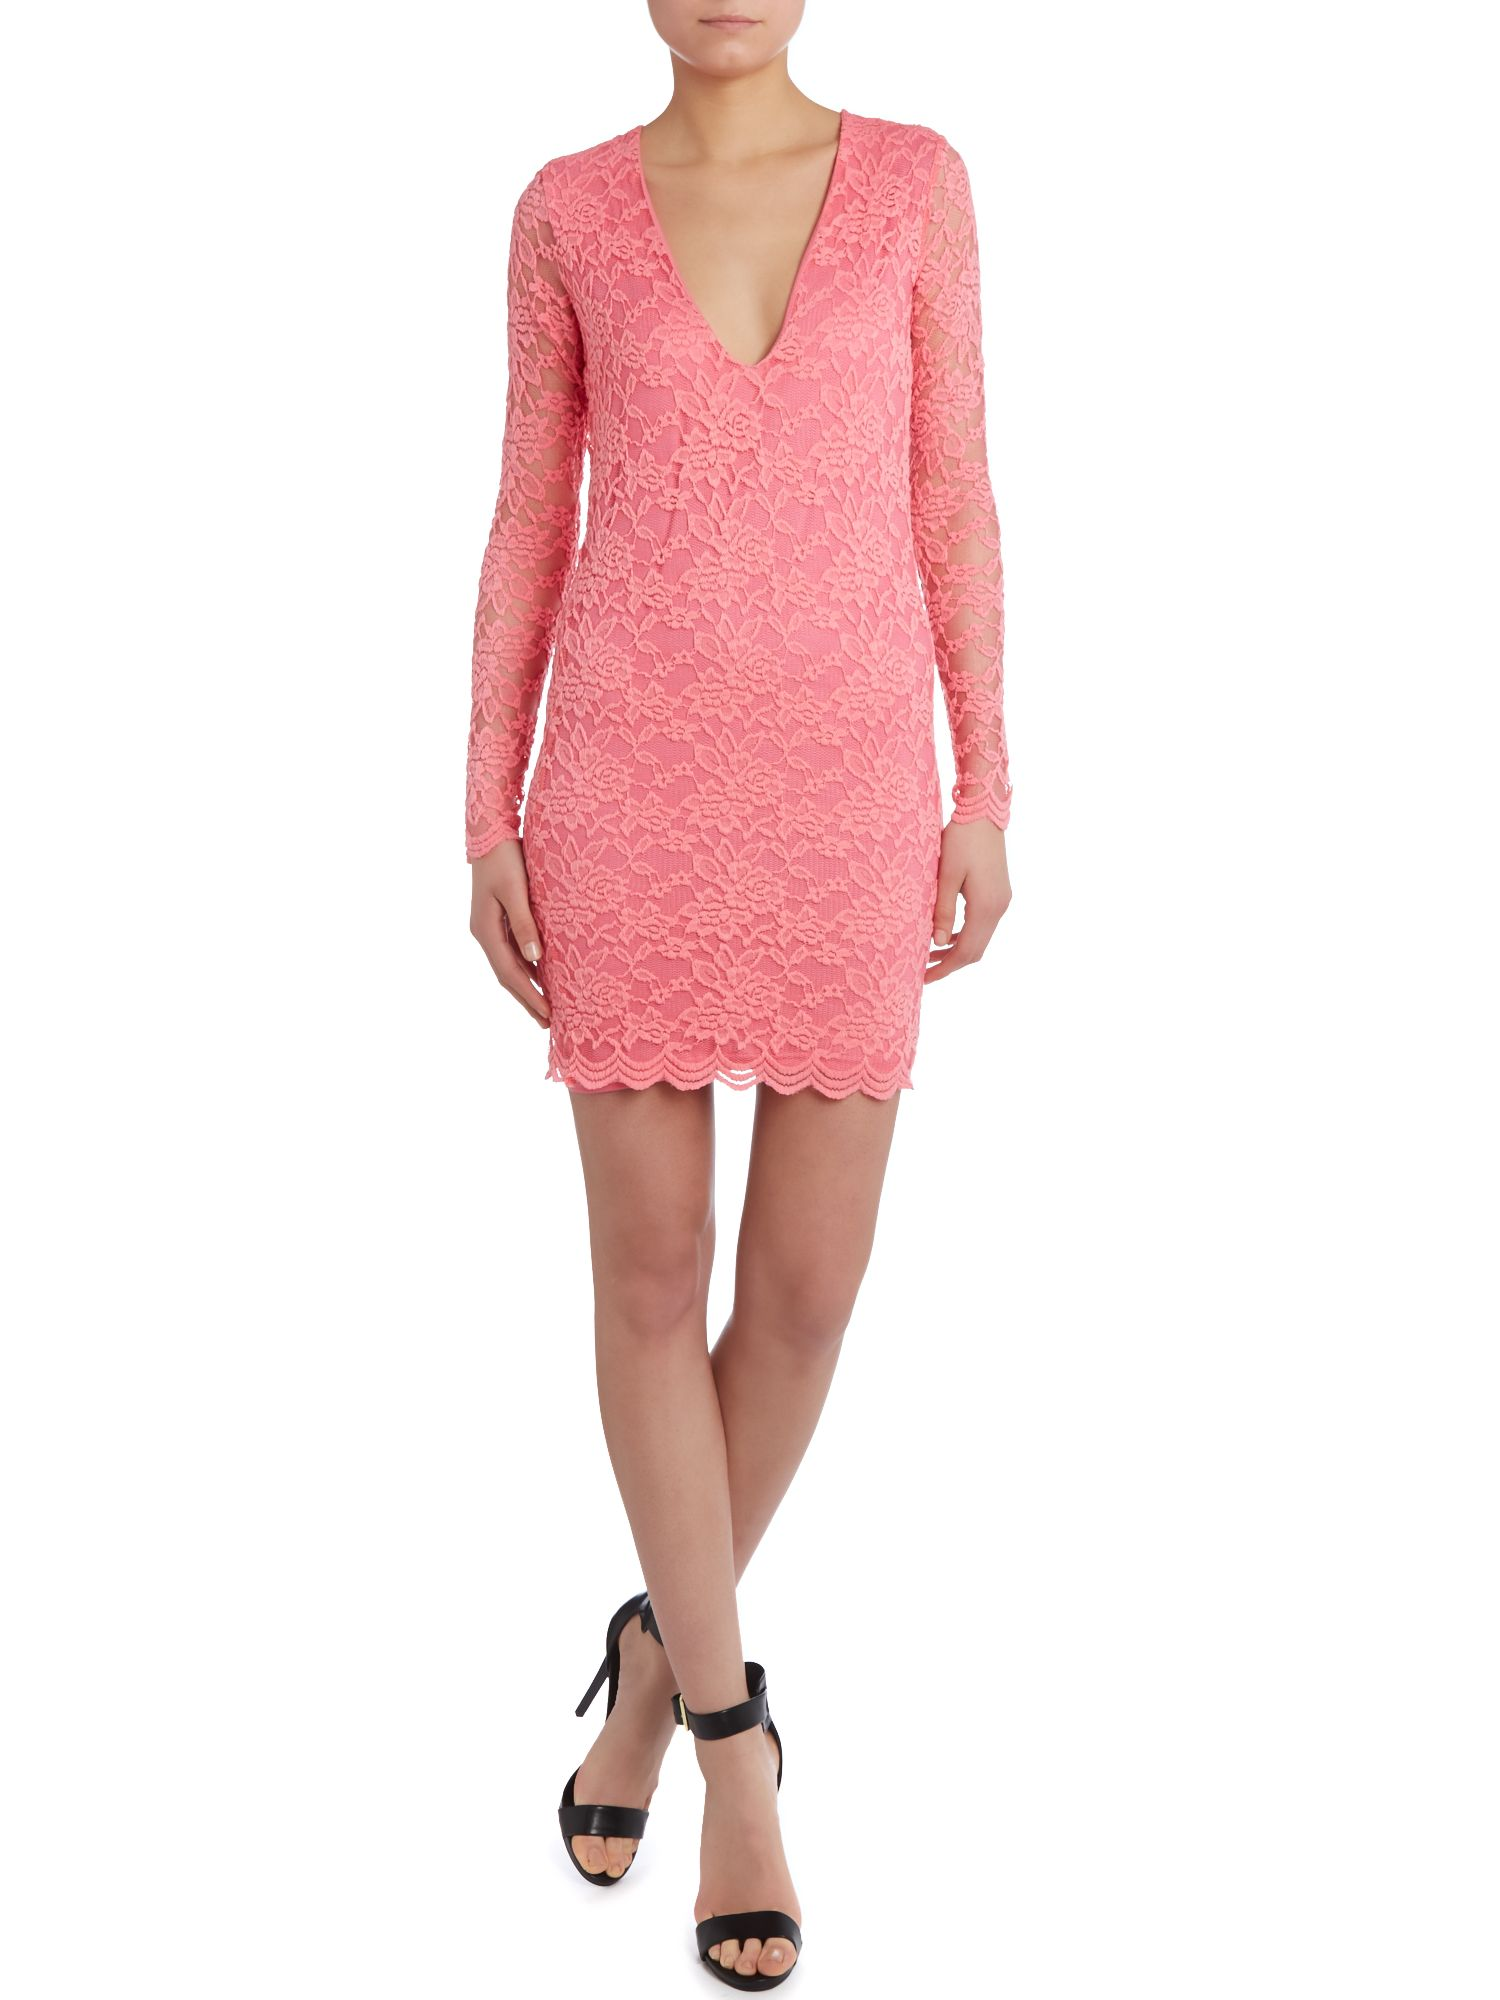 V neckline lace bodycon dress